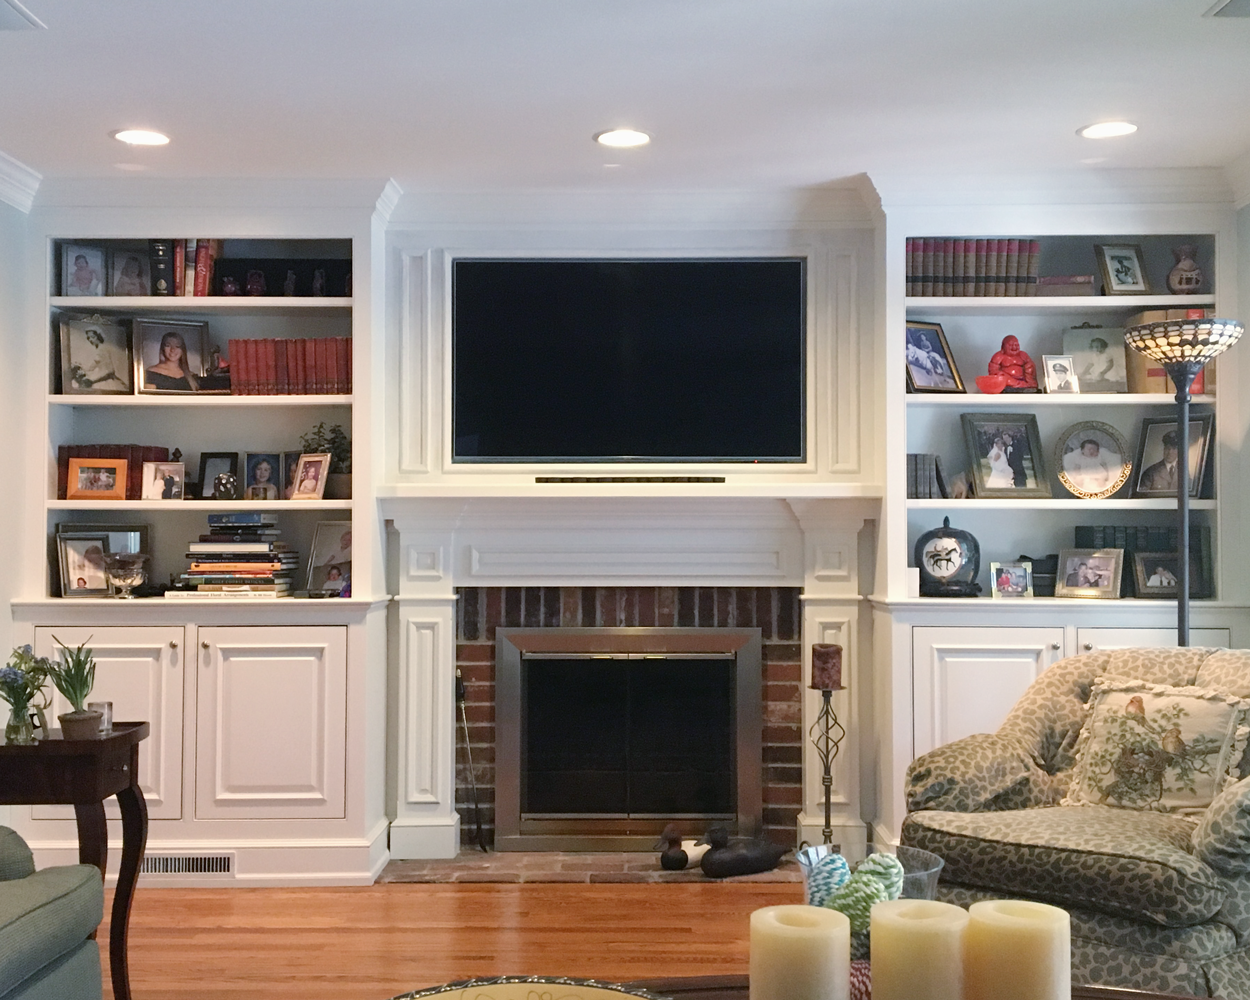 Fireplace/TV Bookshelf